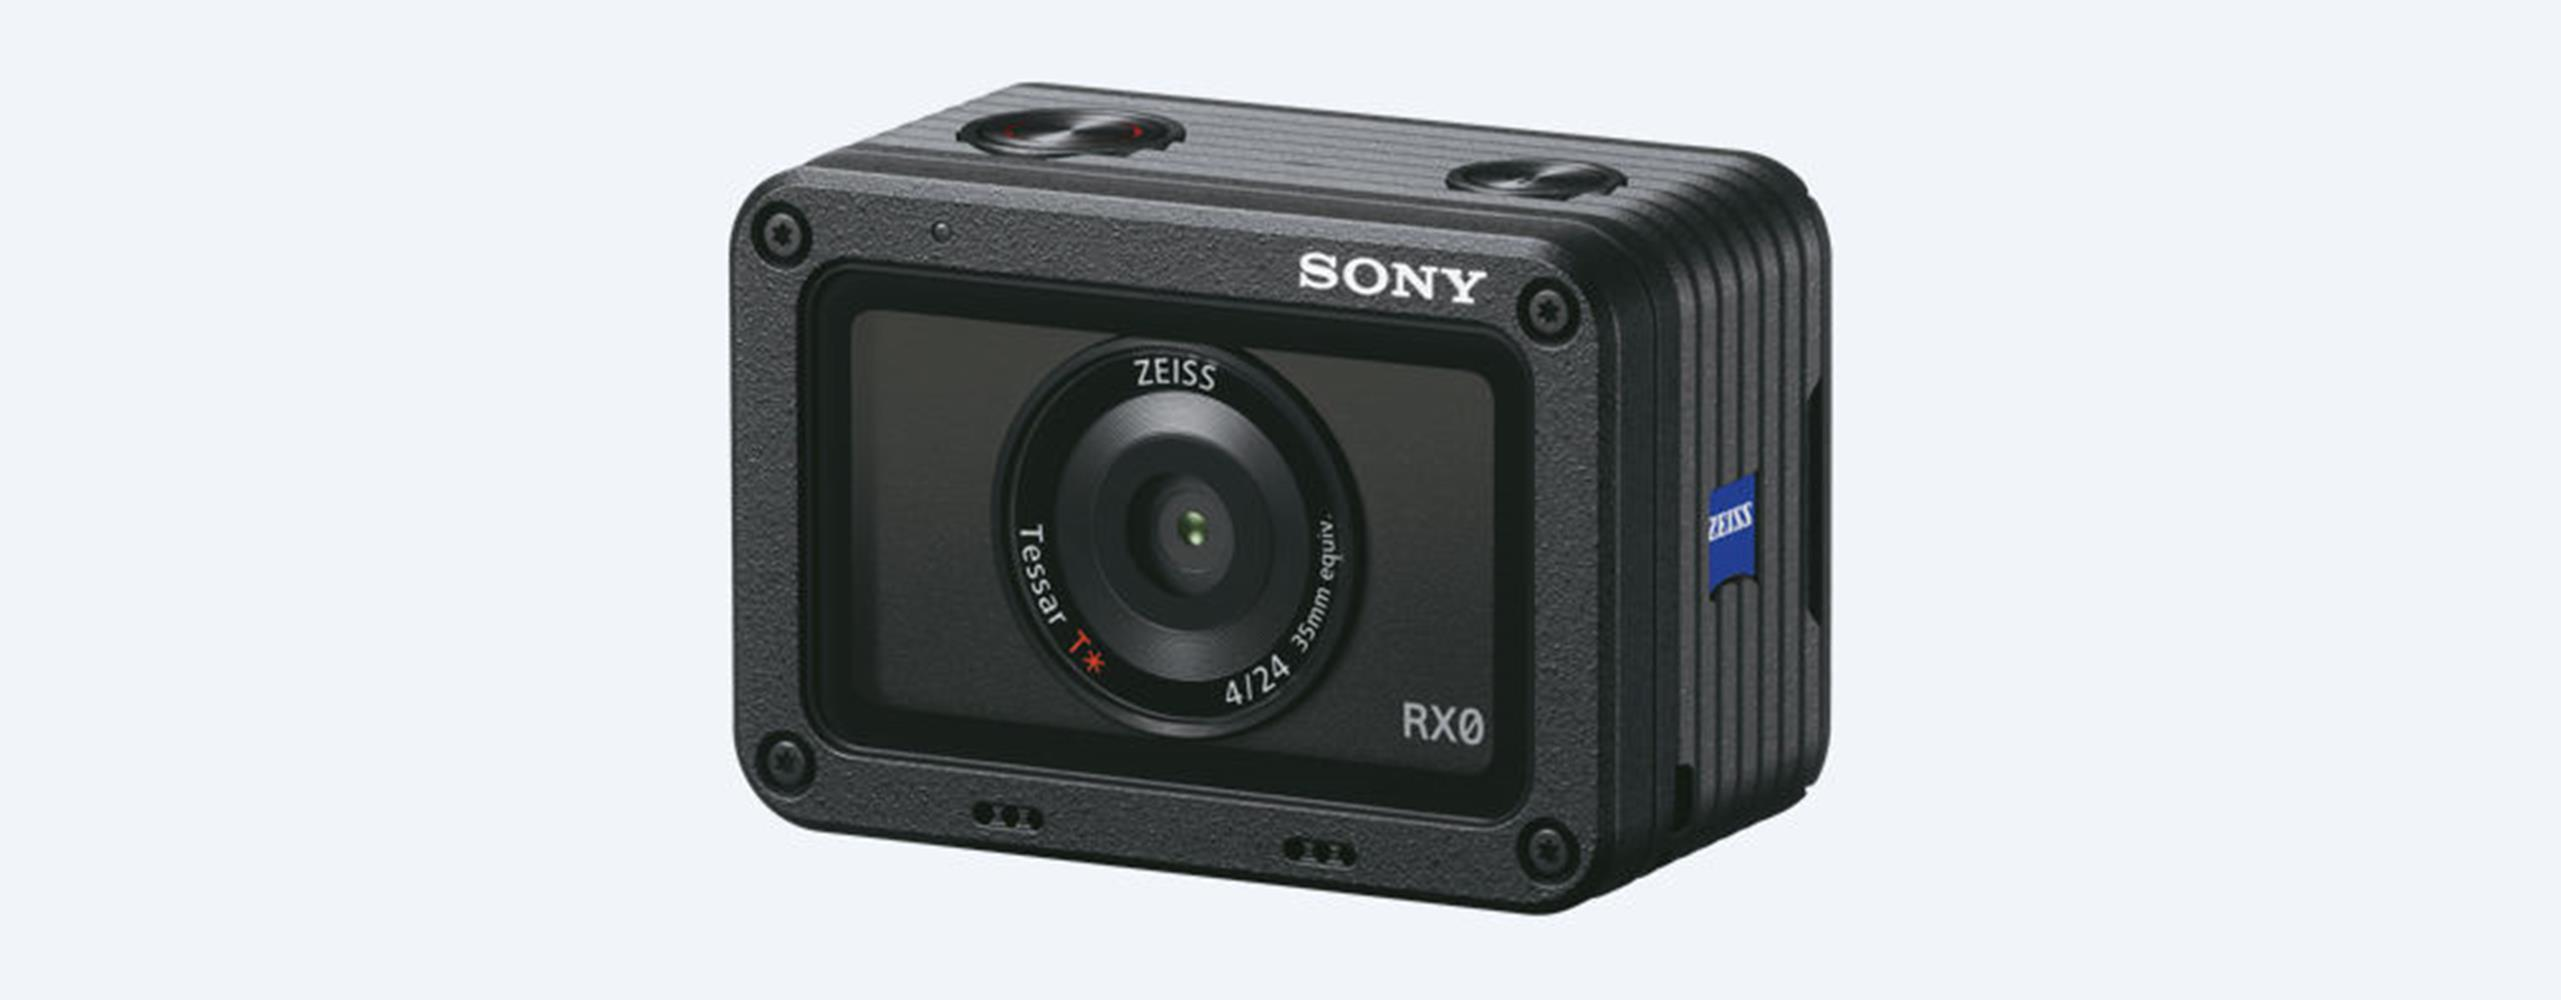 Sony Rx0 Ultra Compact Camera Wont Be Beat On Price Disposable Flash Circuit Schematic In Addition Simple 444son438 2